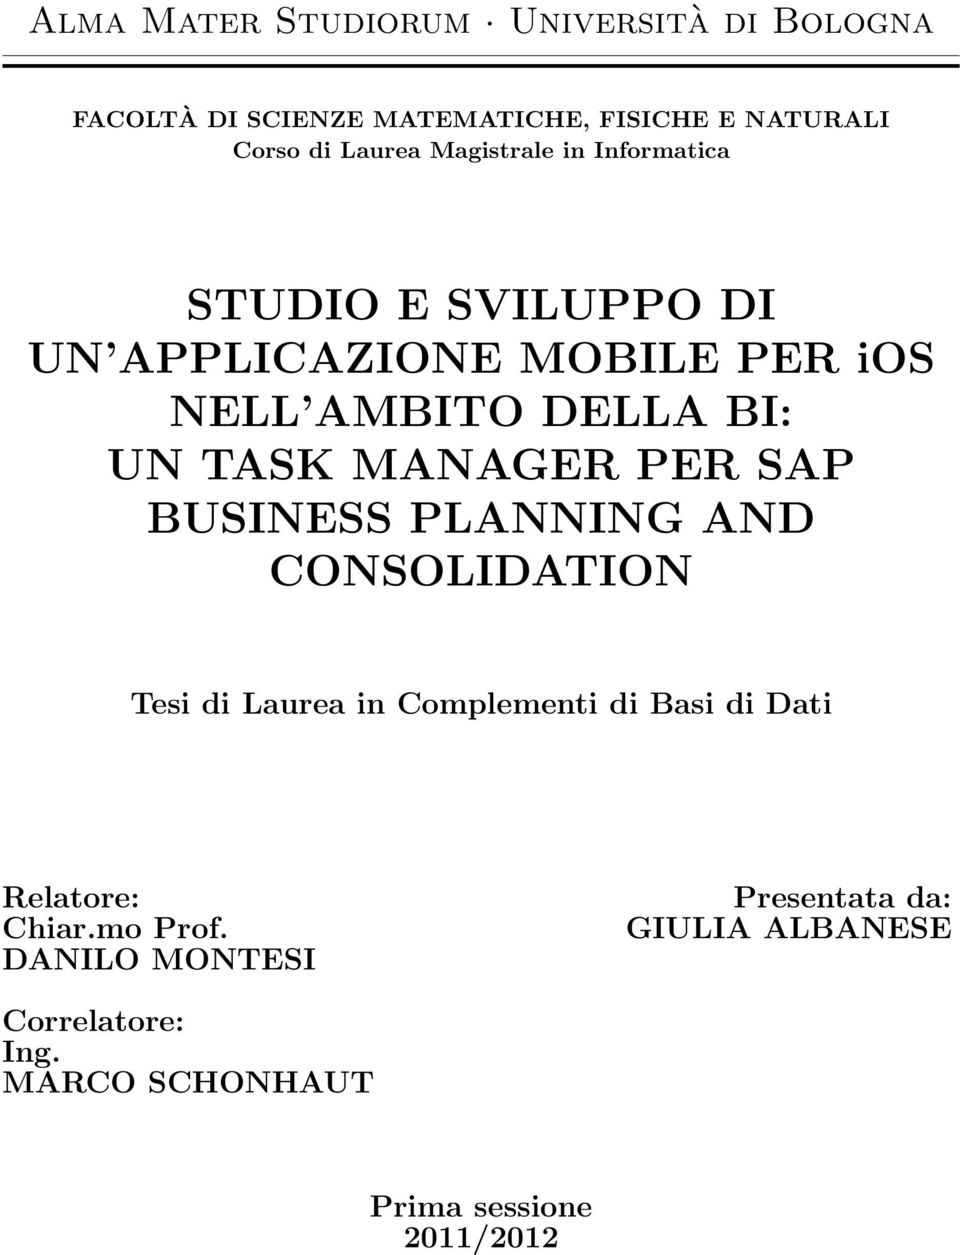 MANAGER PER SAP BUSINESS PLANNING AND CONSOLIDATION Tesi di Laurea in Complementi di Basi di Dati Relatore: